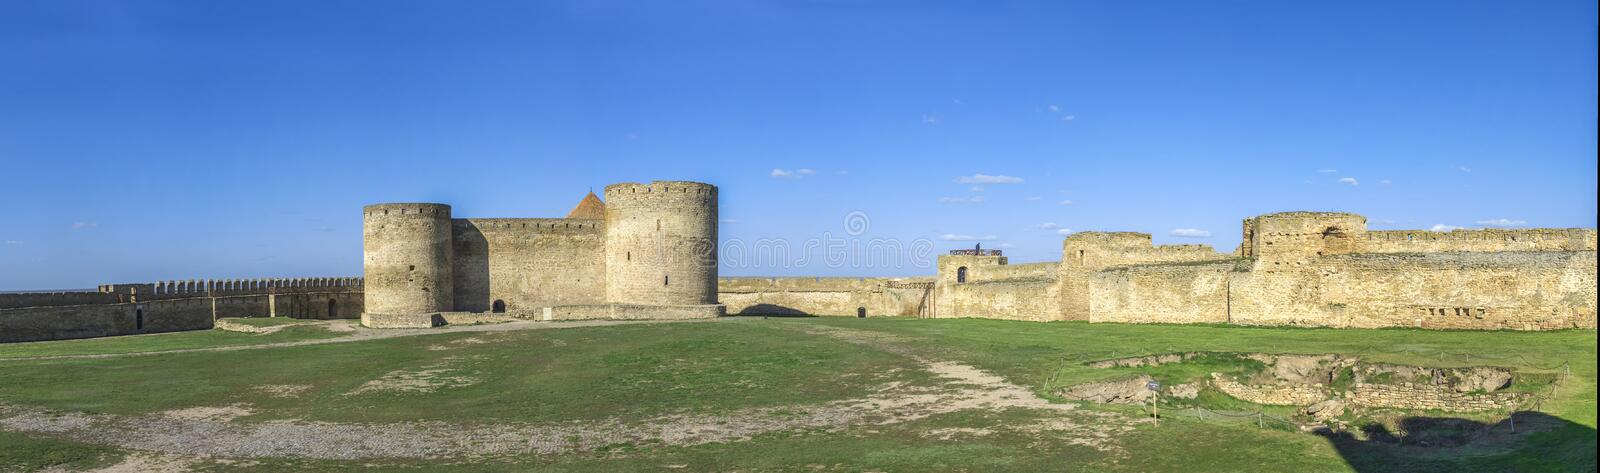 Fortress Walls of the Akkerman Citadel in Ukraine royalty free stock image